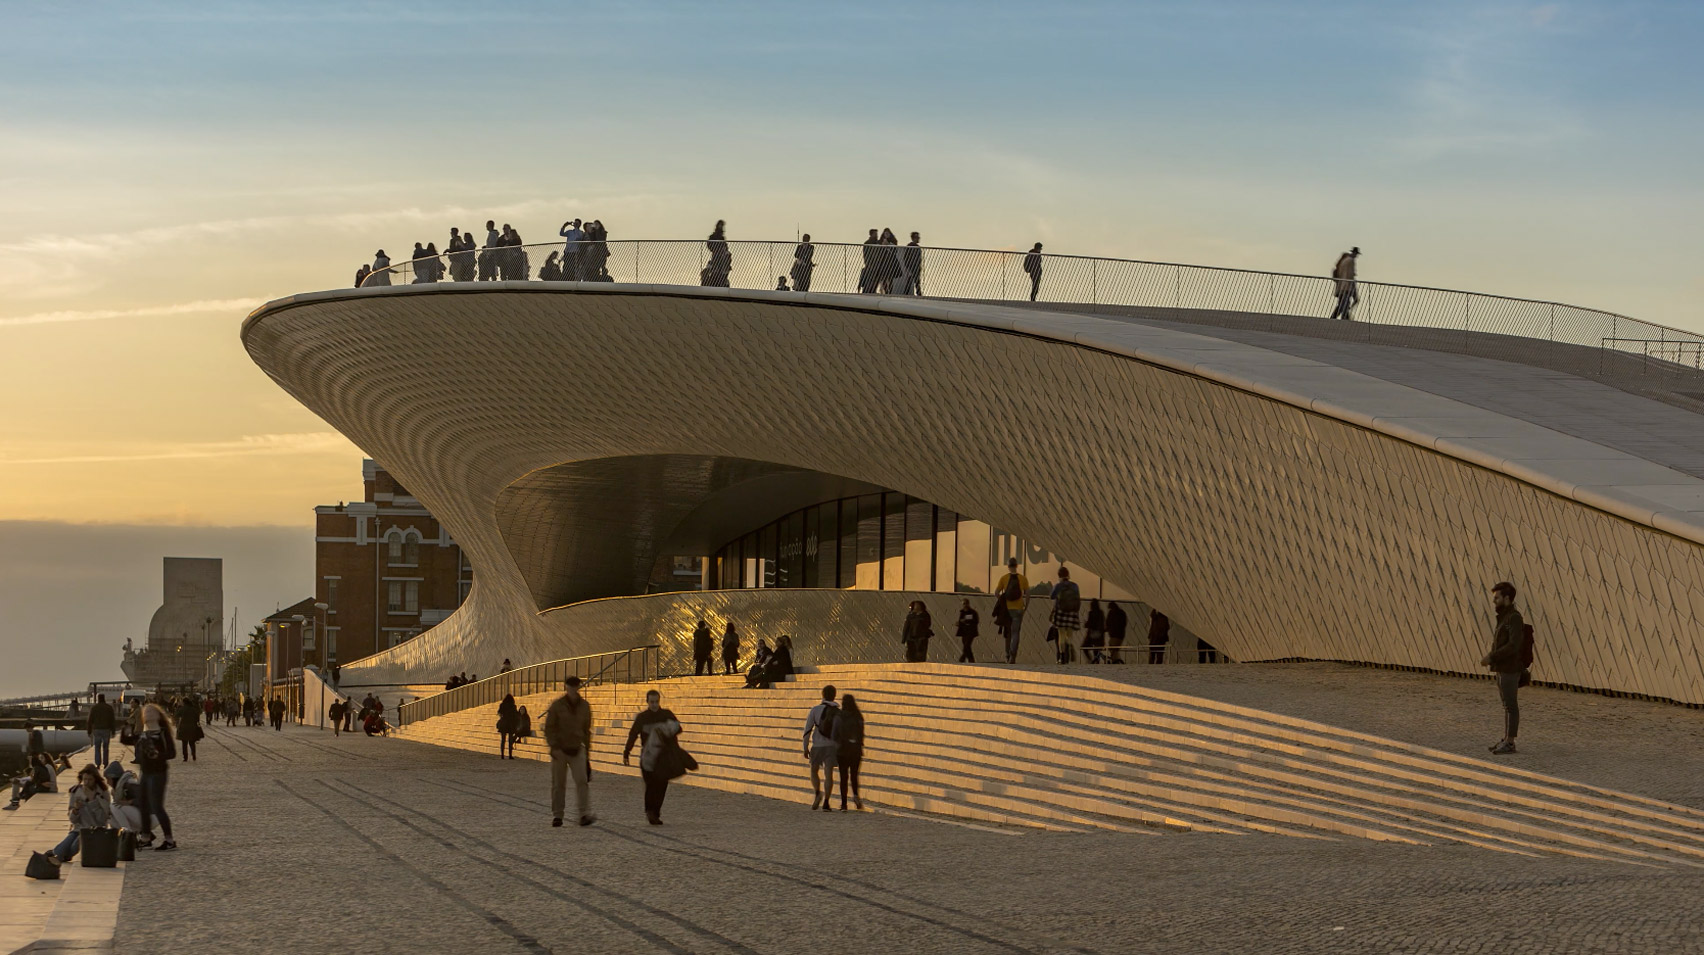 Timelapse movie by Alejandro Villanueva shows Amanda Levete's sinuous MAAT museum